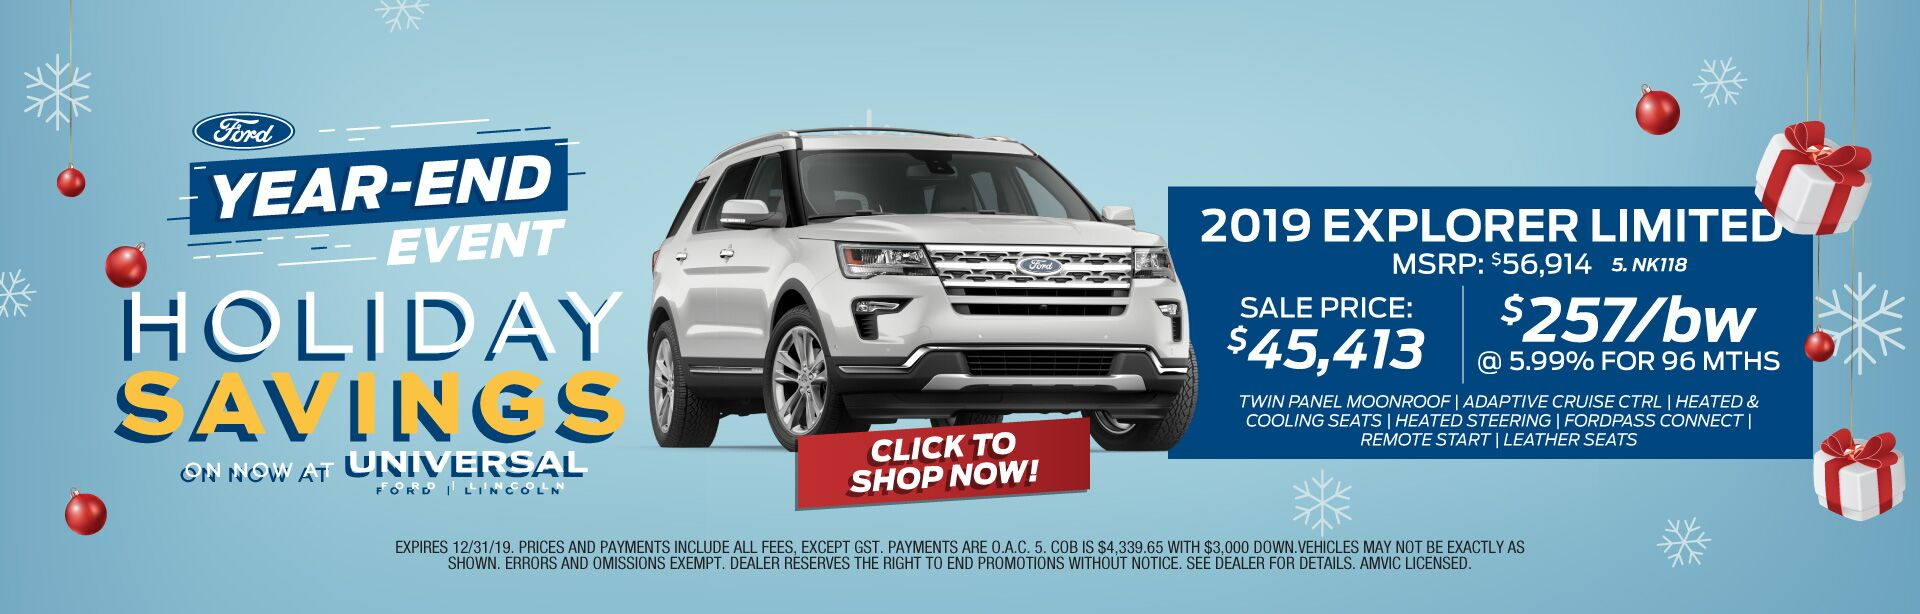 Year-End Event Holiday Savings - Explorer